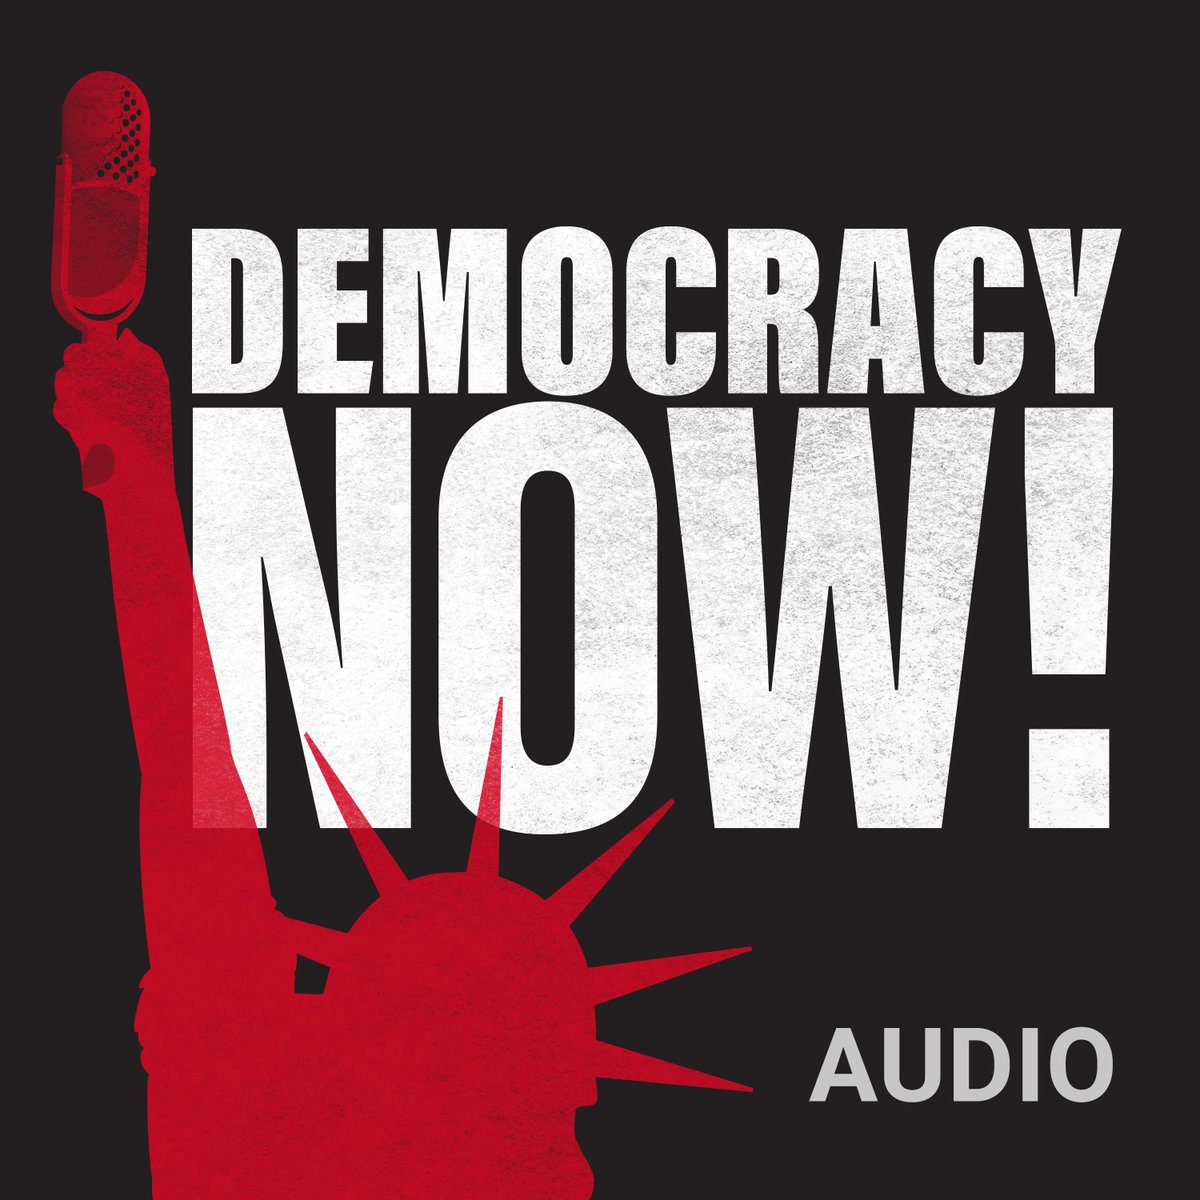 Subscribe to @DemocracyNow on Apple Podcasts, Google Play, Spotify and wherever else you get your podcasts. https://www.democracynow.org/pages/help/podcasting…pic.twitter.com/fghyd61pqj